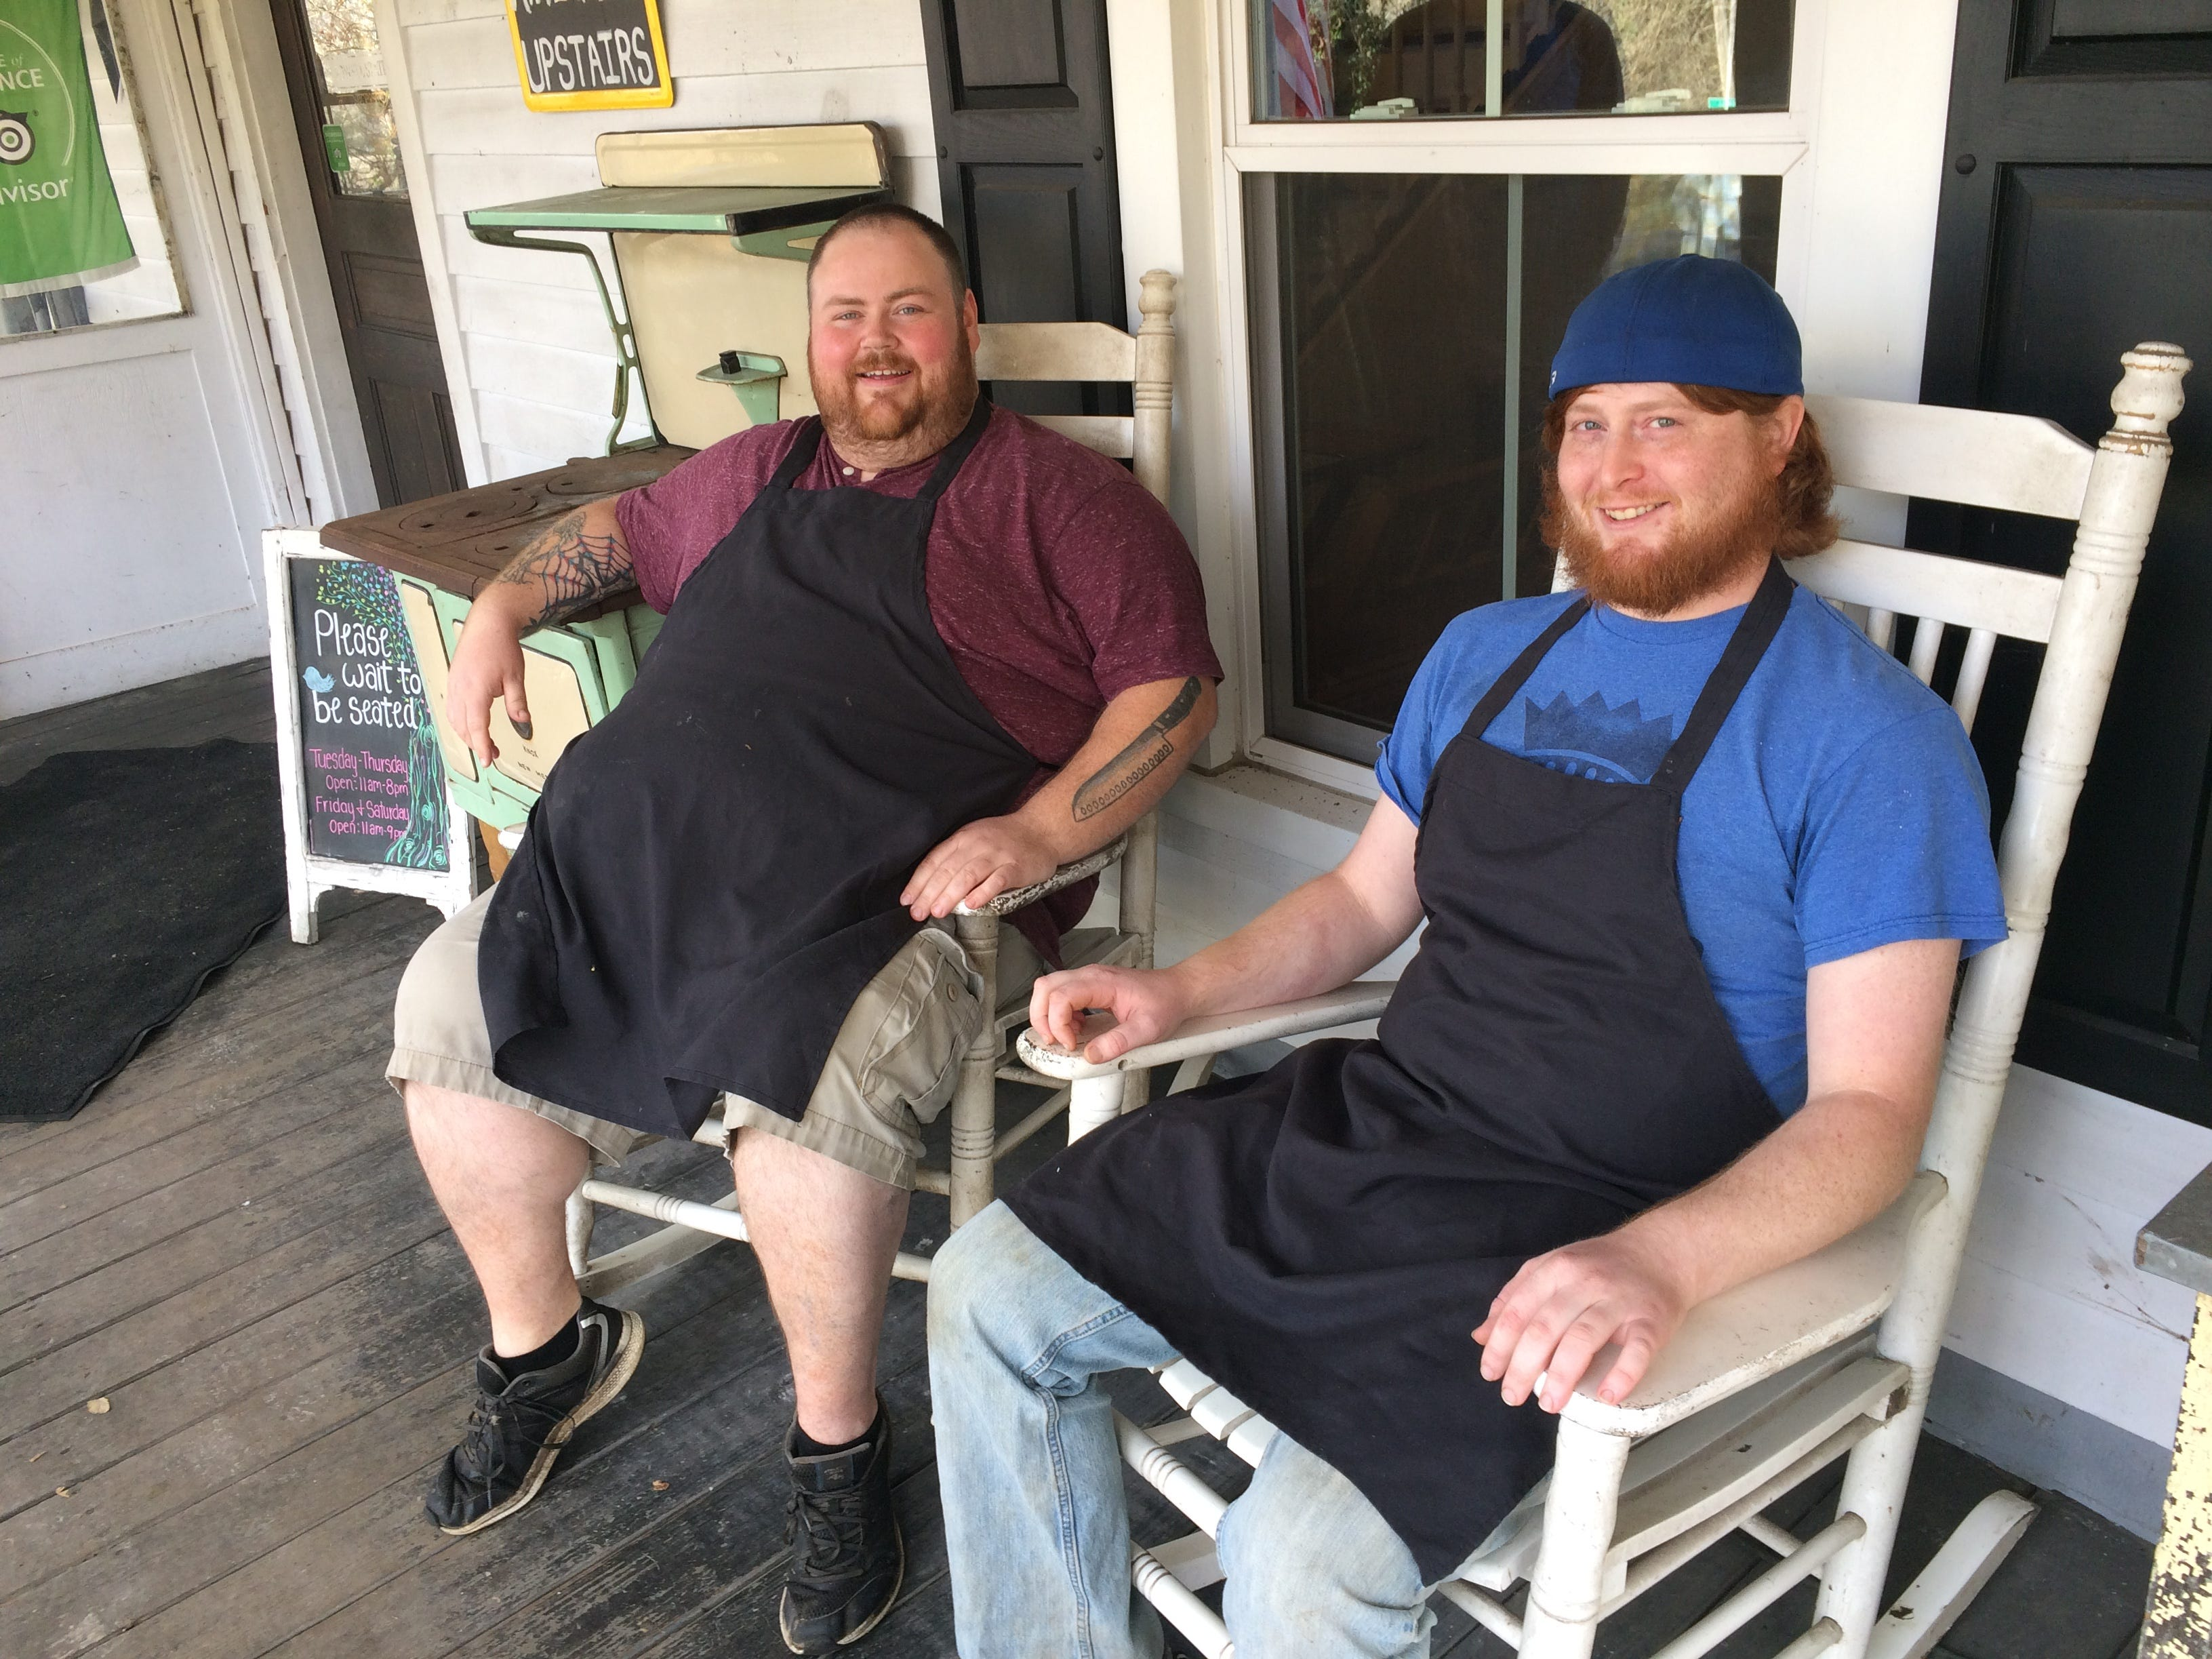 Chef Ken Huddleson, left, and sous chef Jordyn Bough enjoy a moment on the front porch.